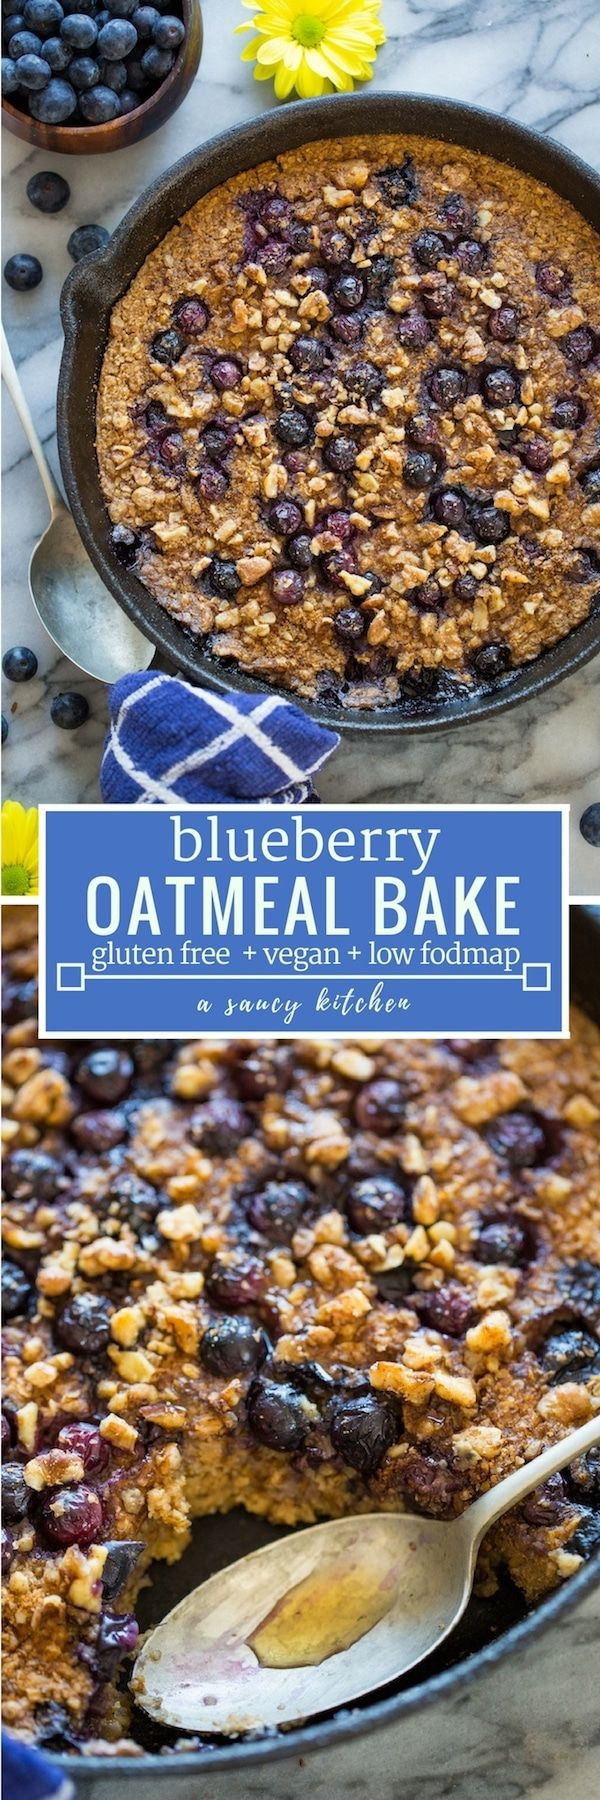 Easy to make Blueberry Oatmeal Bake – topped with chopped walnuts, spiced with cinnamon and packed full of juicy berries. #GlutenFree + #Vegan  #bakedoatmeal #blueberries #healthybreakfast